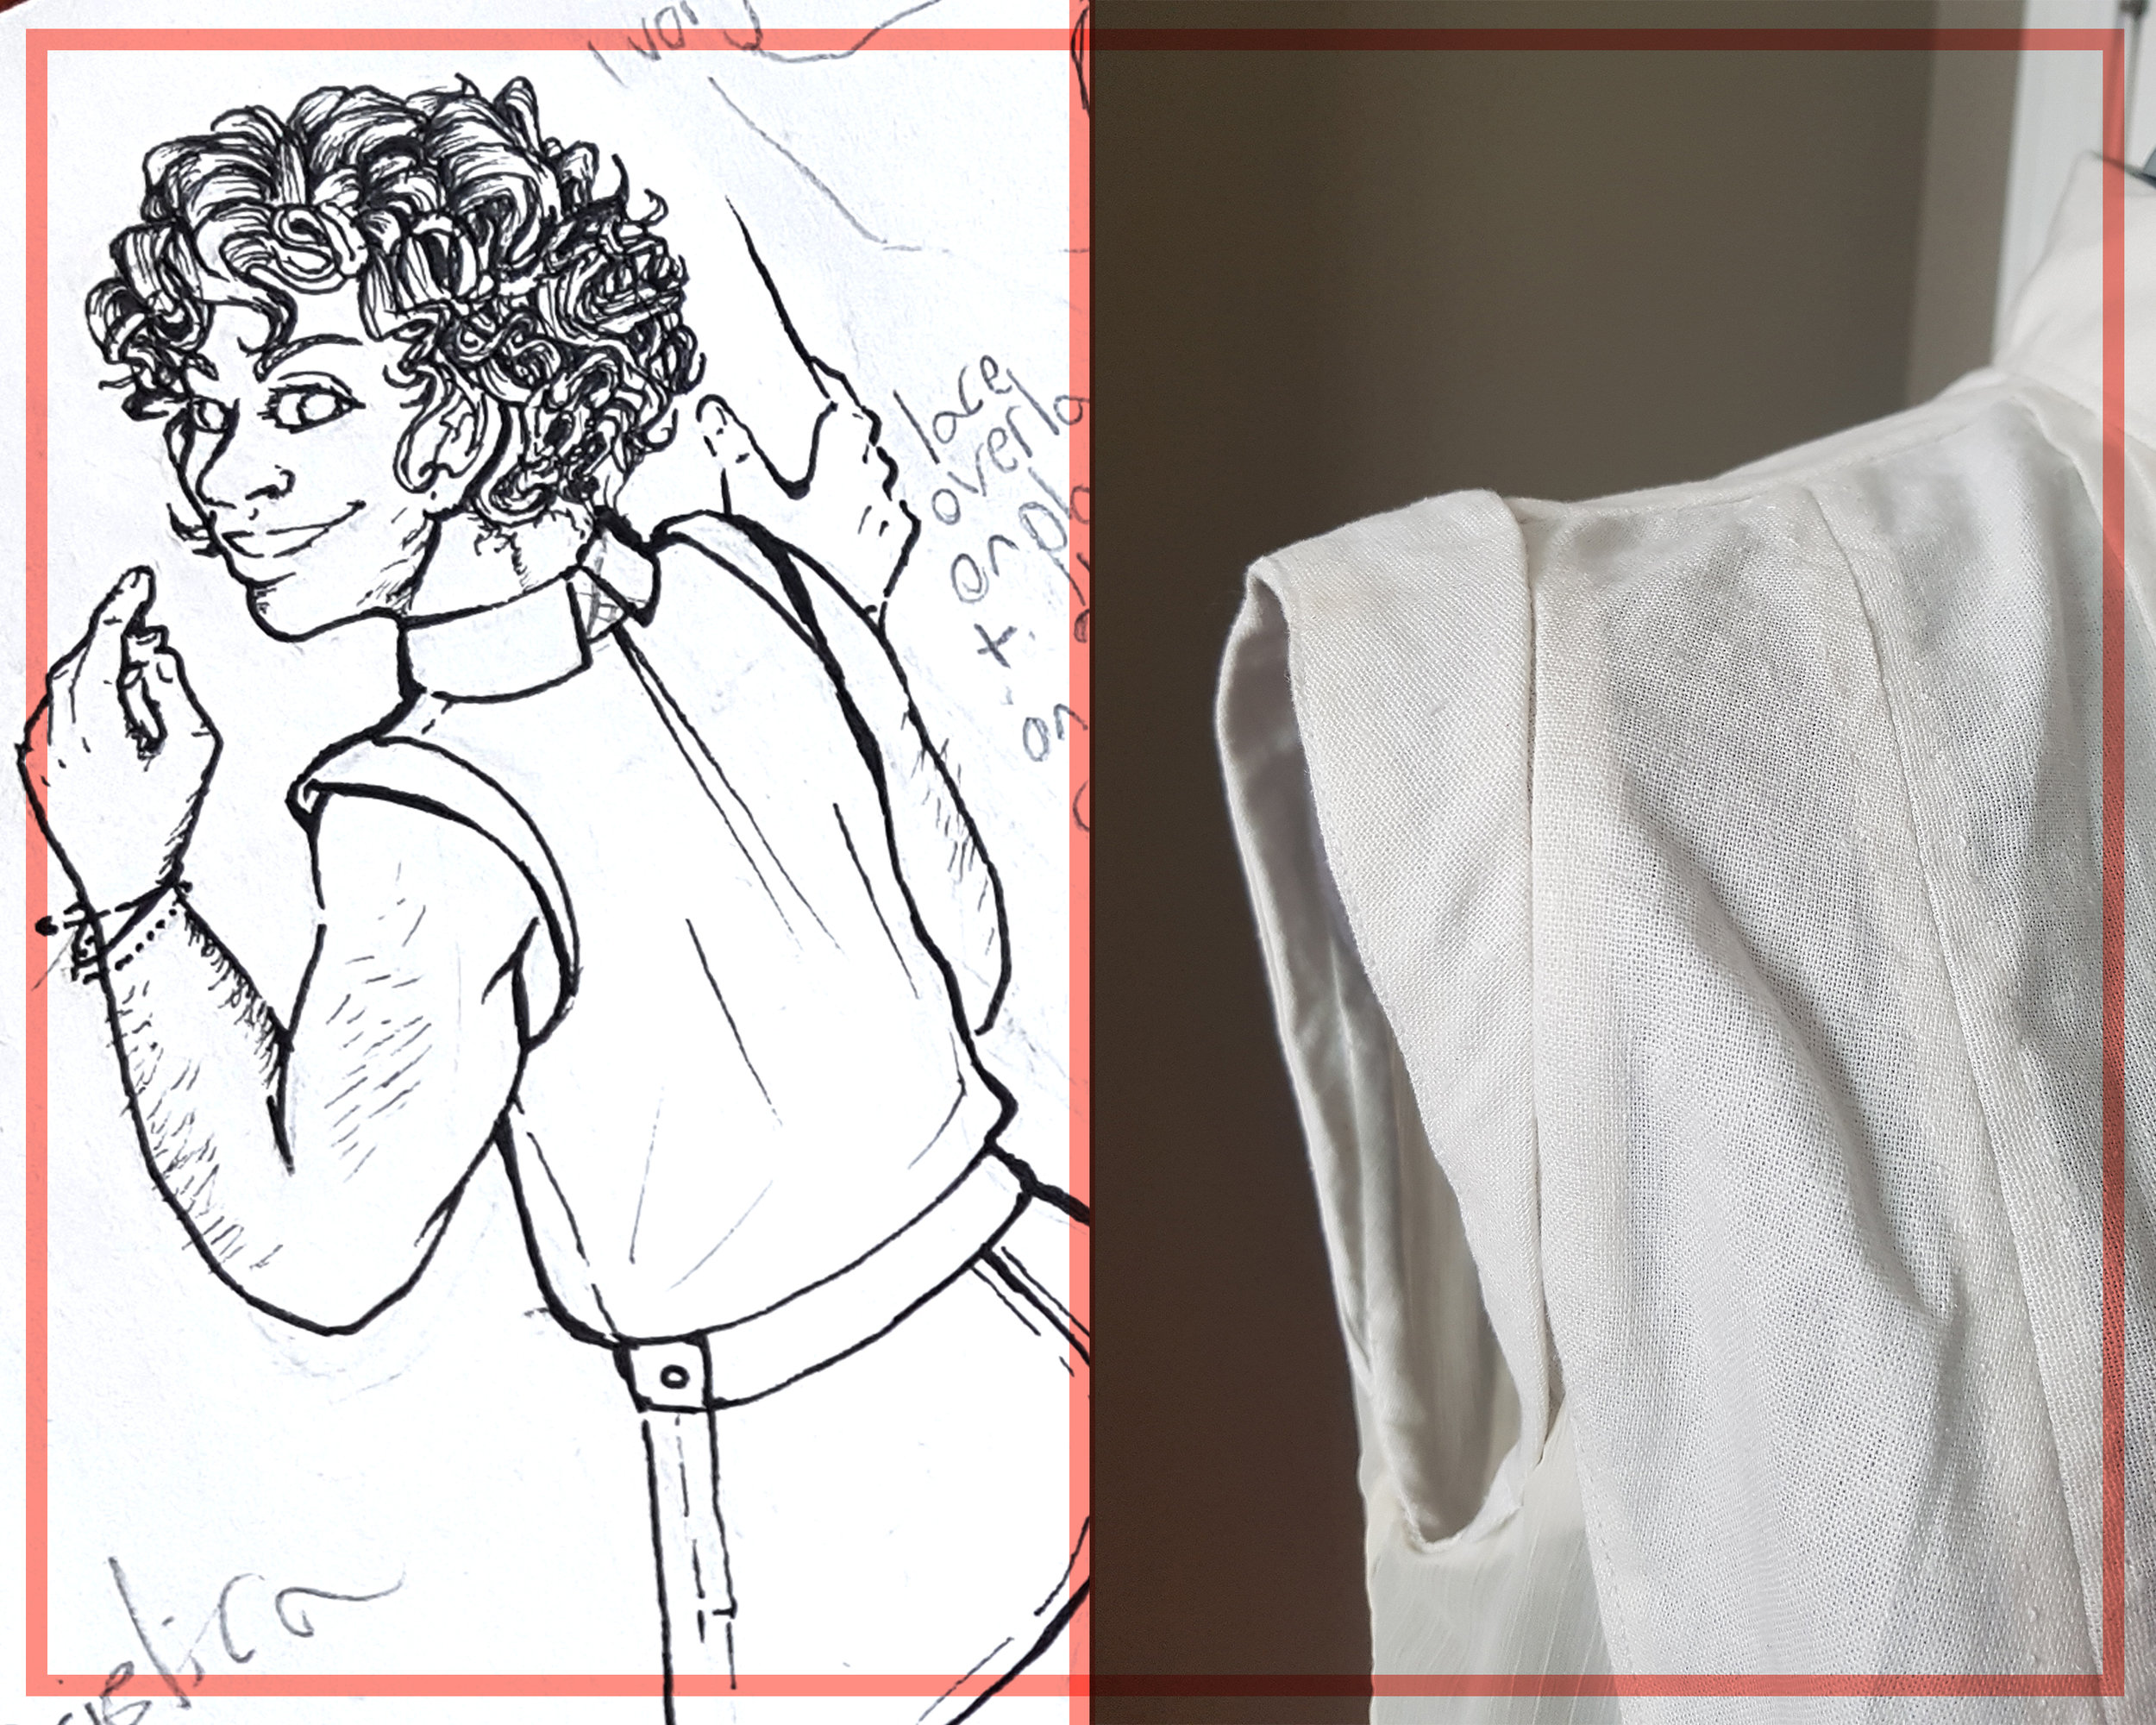 Caption: A side-by-side comparison of my original drawing of the Amelia Ensemble and a close up photo of the armhole detail. The sketch has shoulder caps that are lifted off of the shoulder very slightly; the caps on the actual blouse are basically flush to the shoulder.